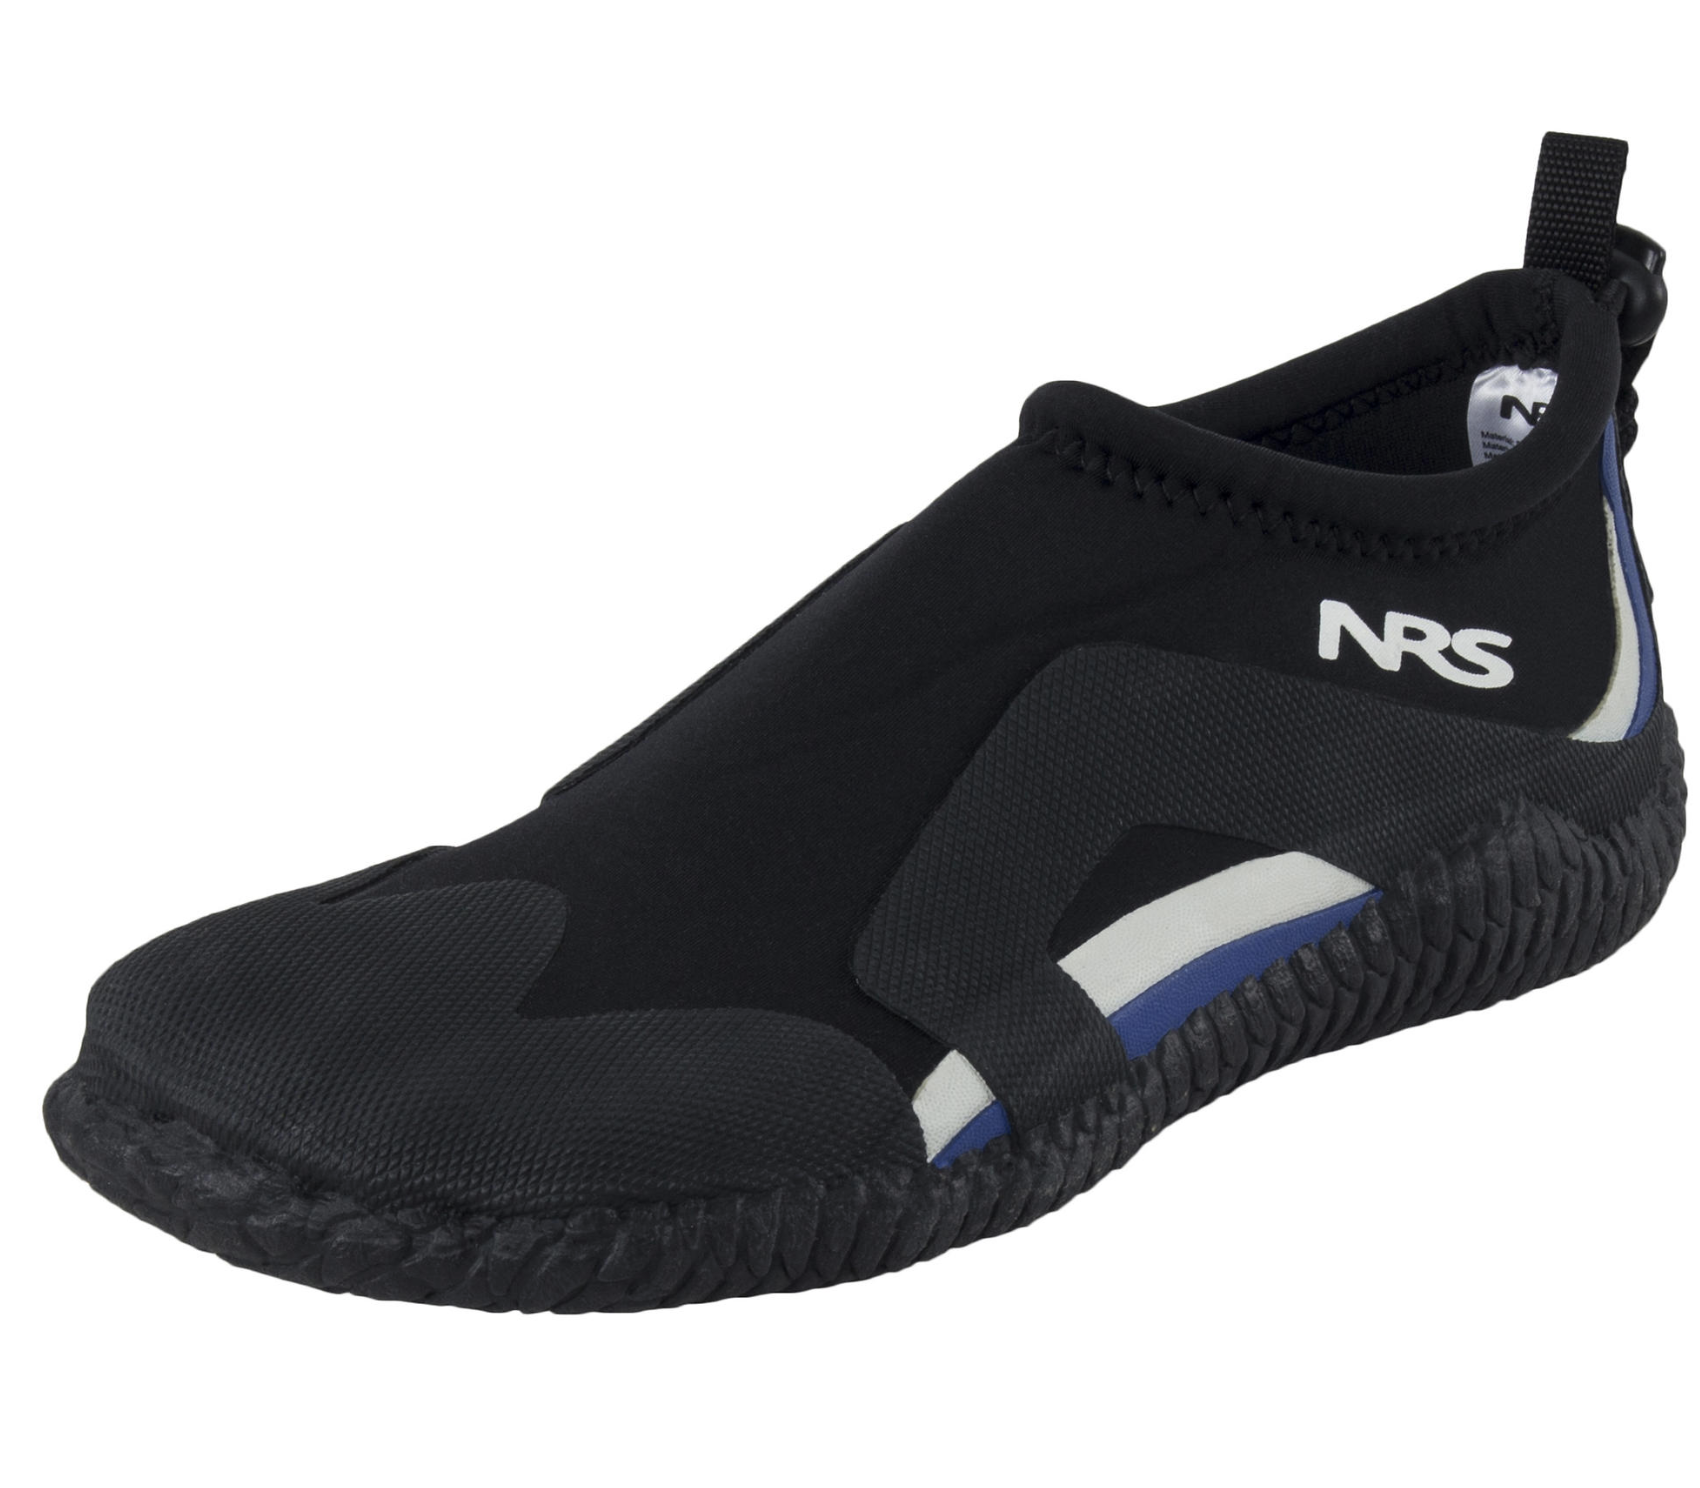 Footwear: Men's Kicker Remix Wetshoes by NRS - Image 4790